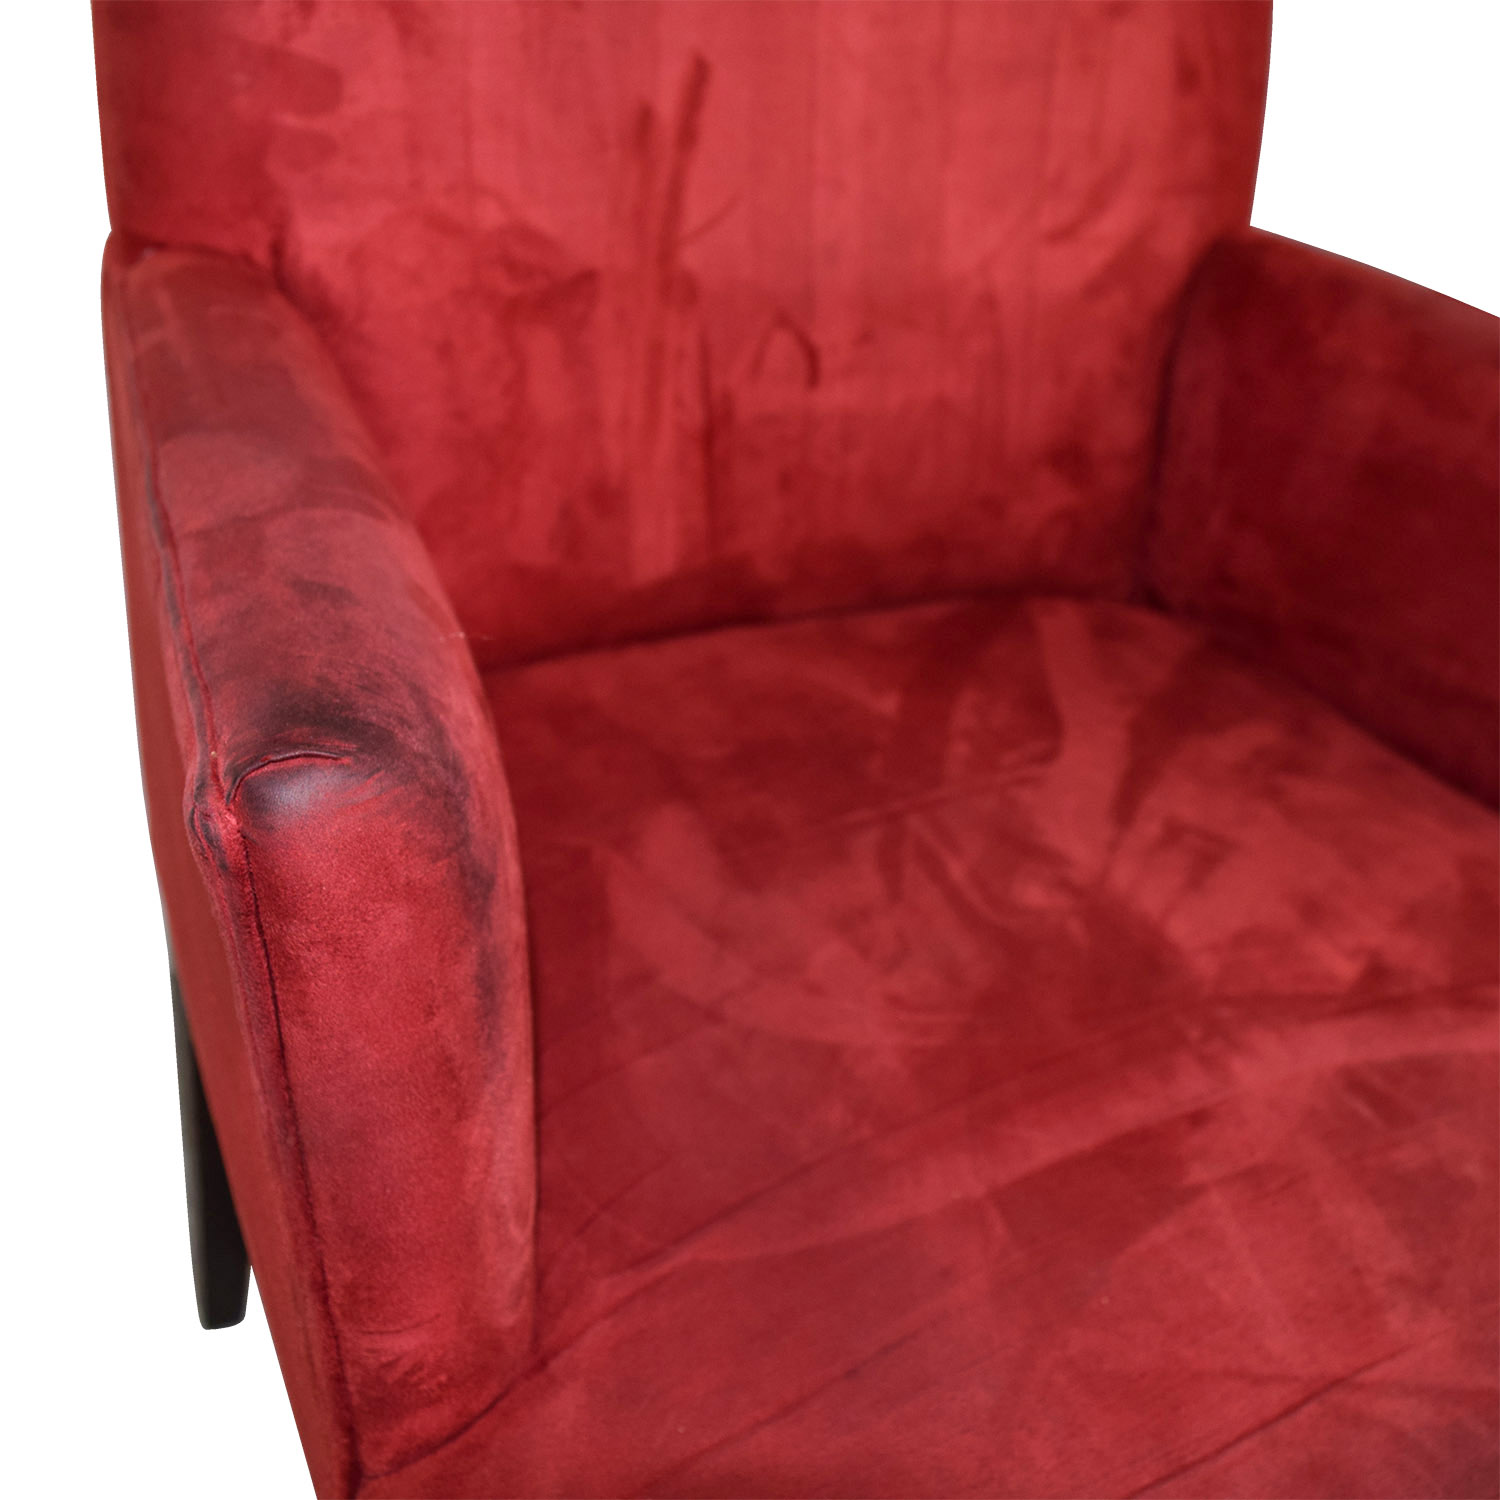 Crate & Barrel Crate & Barrel Microsuede Cranberry Chairs nyc